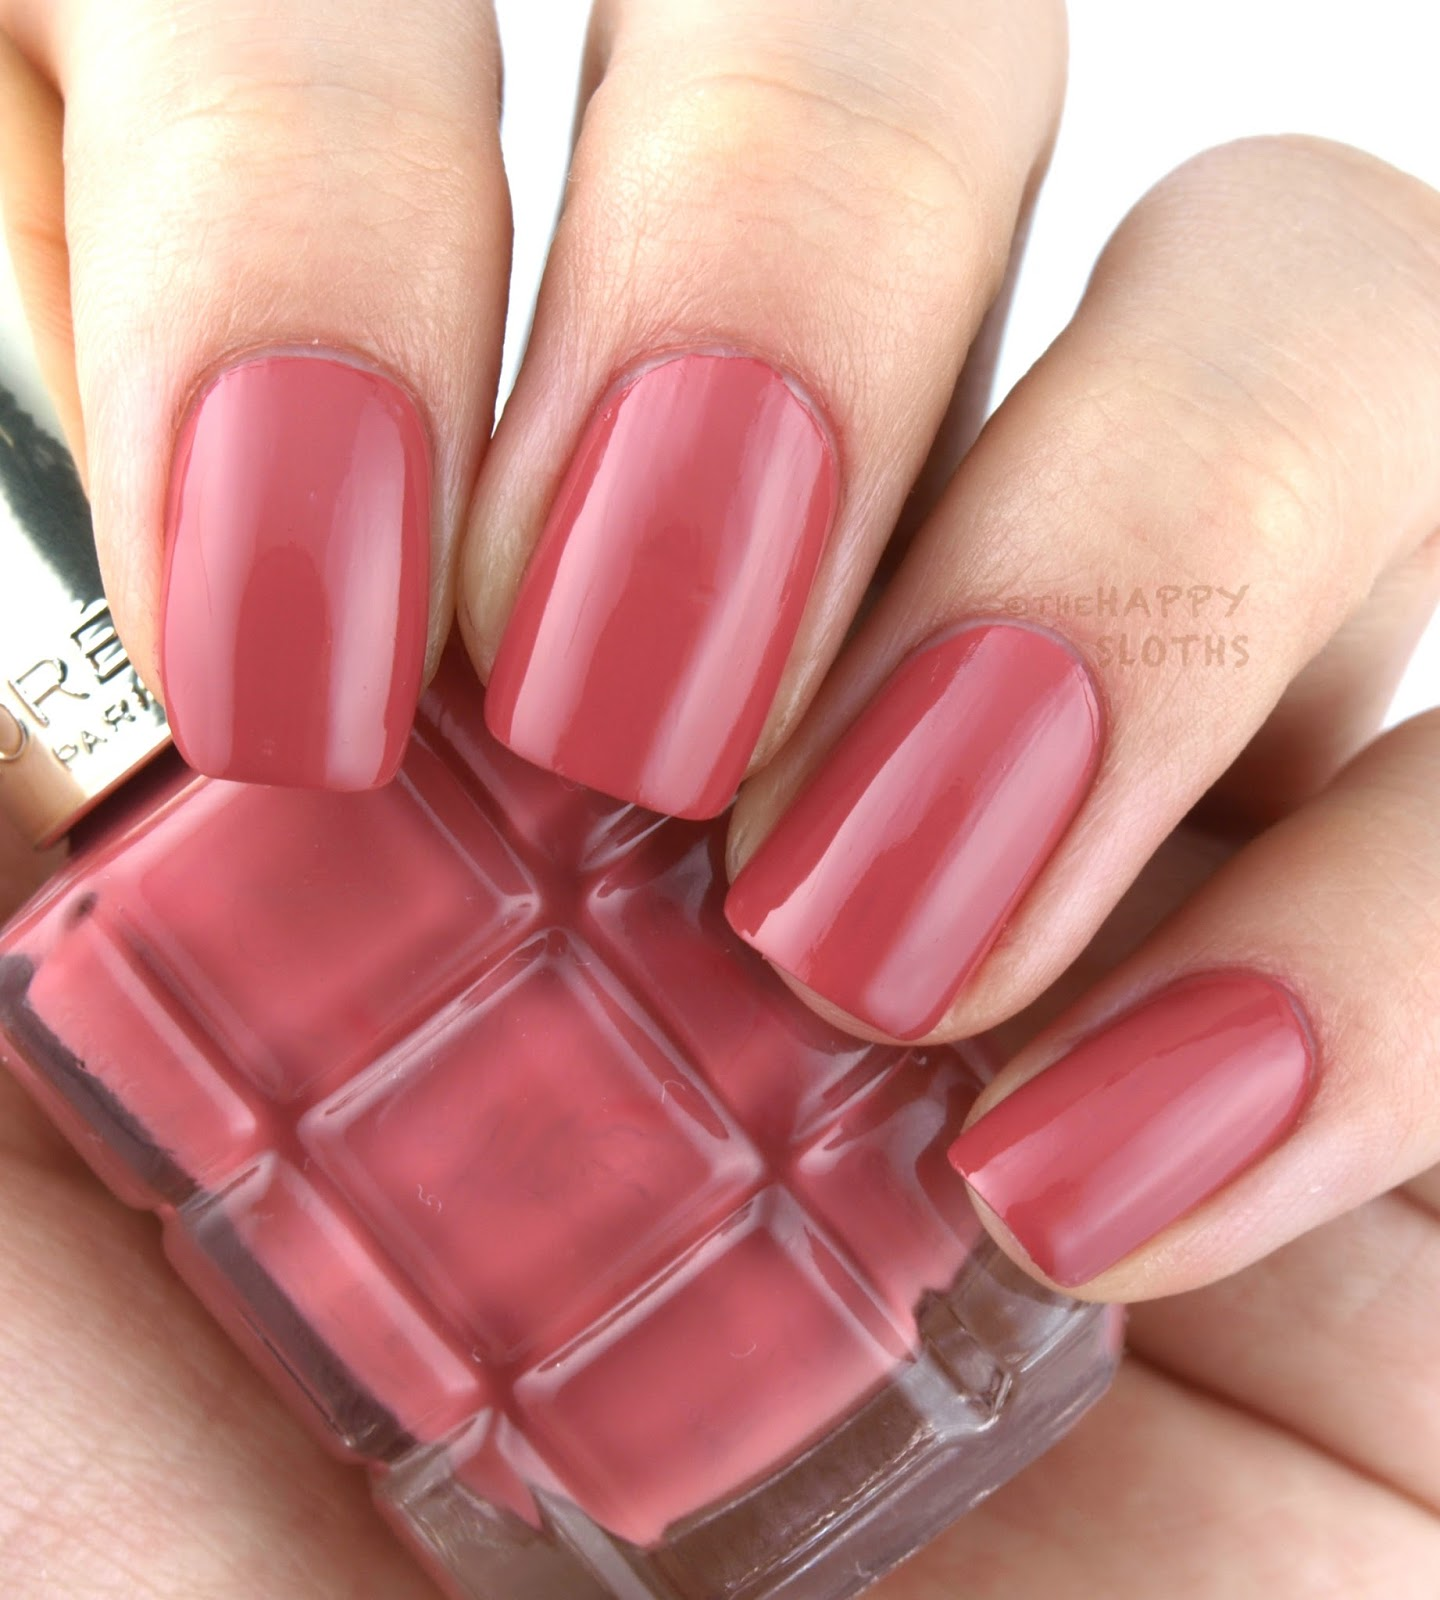 l 39 oreal color riche le vernis a l 39 huile nail polish review and swatches the happy sloths. Black Bedroom Furniture Sets. Home Design Ideas